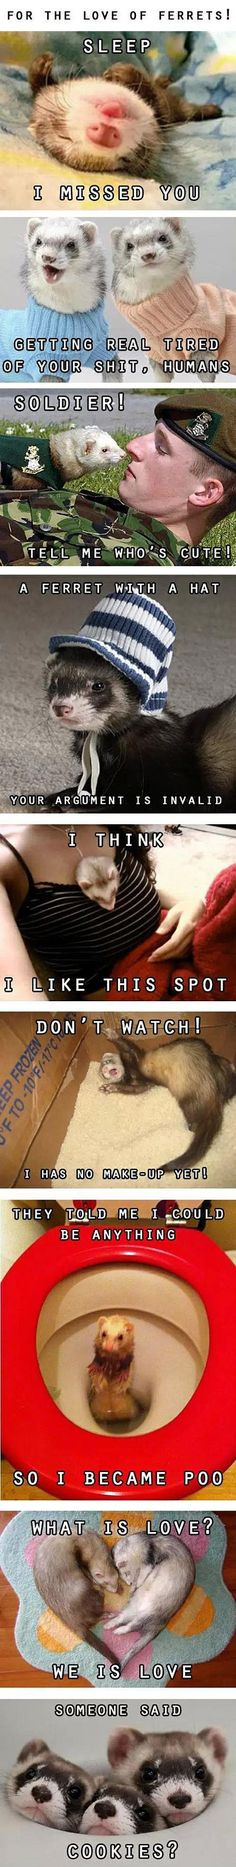 Humorous compilation of cute ferrets pictures with funny captions. Getting real tired of your sh*t humans. Ferrets Care, Baby Ferrets, Funny Ferrets, Pet Ferret, Funny Animals With Captions, Funny Captions, Cute Funny Animals, Funny Cute, Animals And Pets